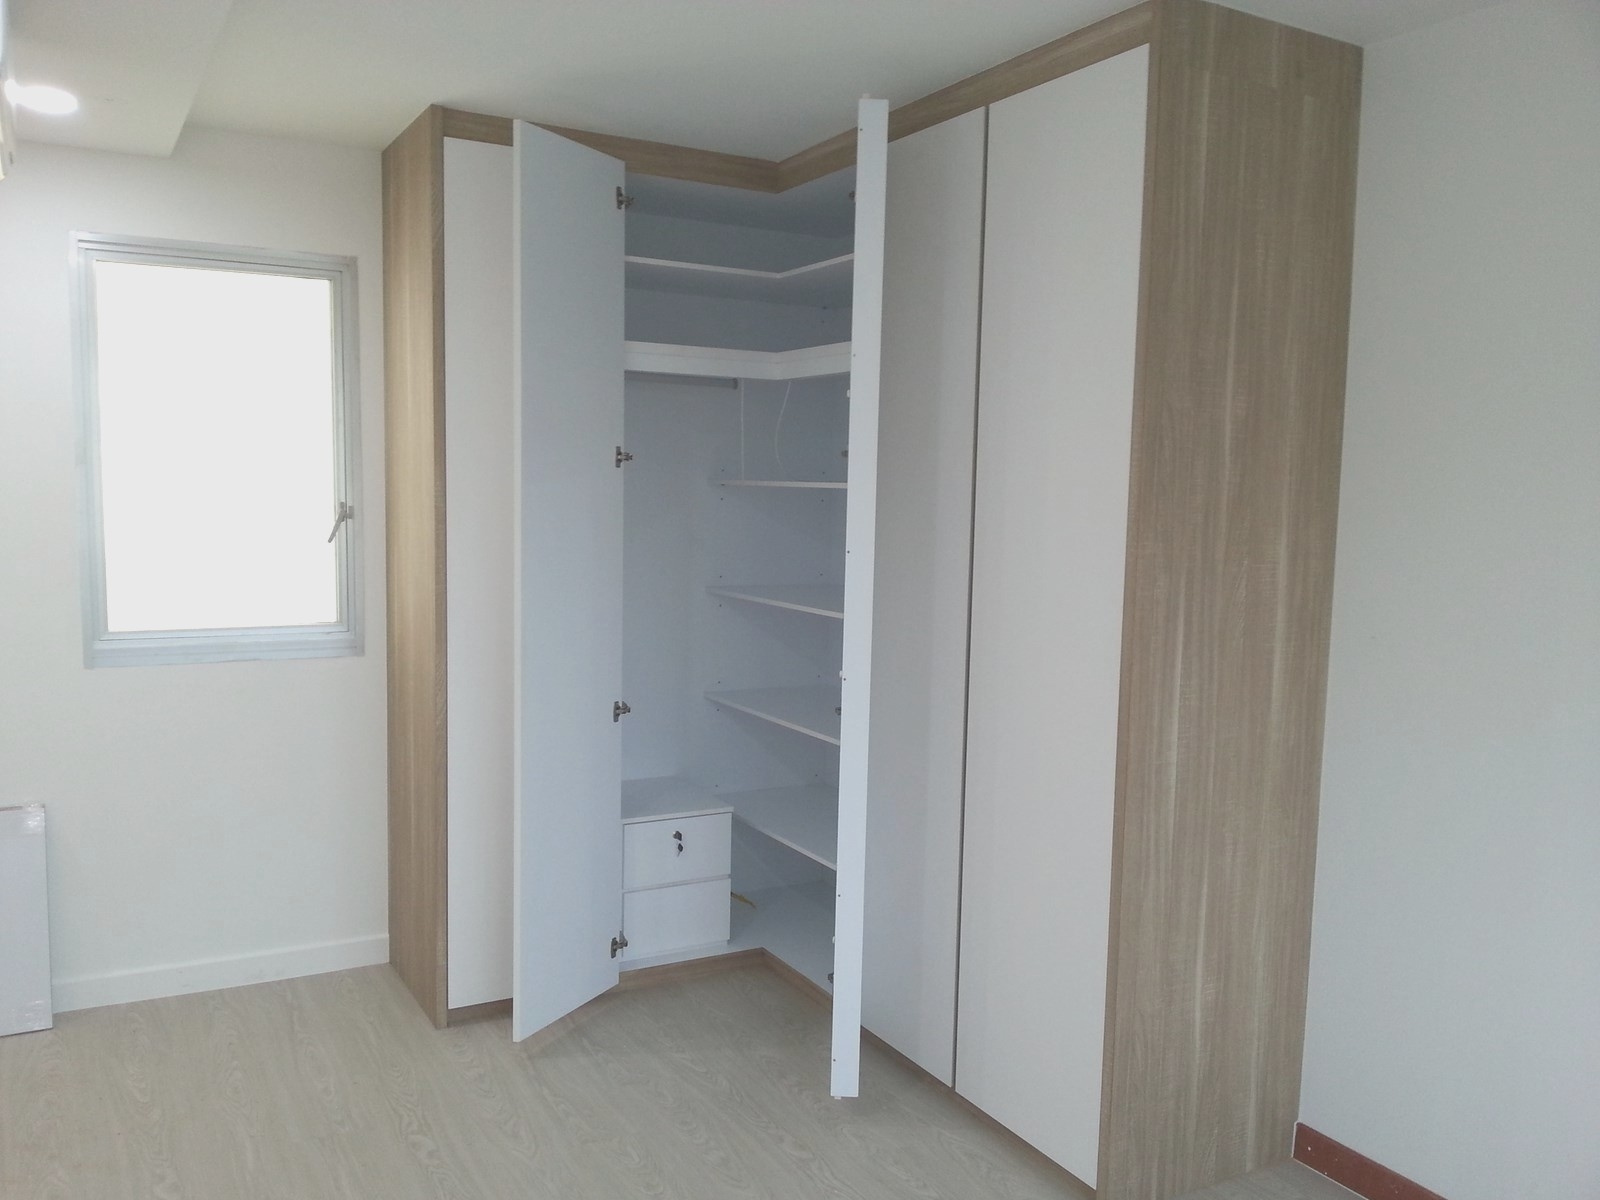 Widely Used Small Corner Wardrobes Regarding Bedroom : Bedroom New Corner Wardrobes For Small Bedrooms Decor (View 15 of 15)